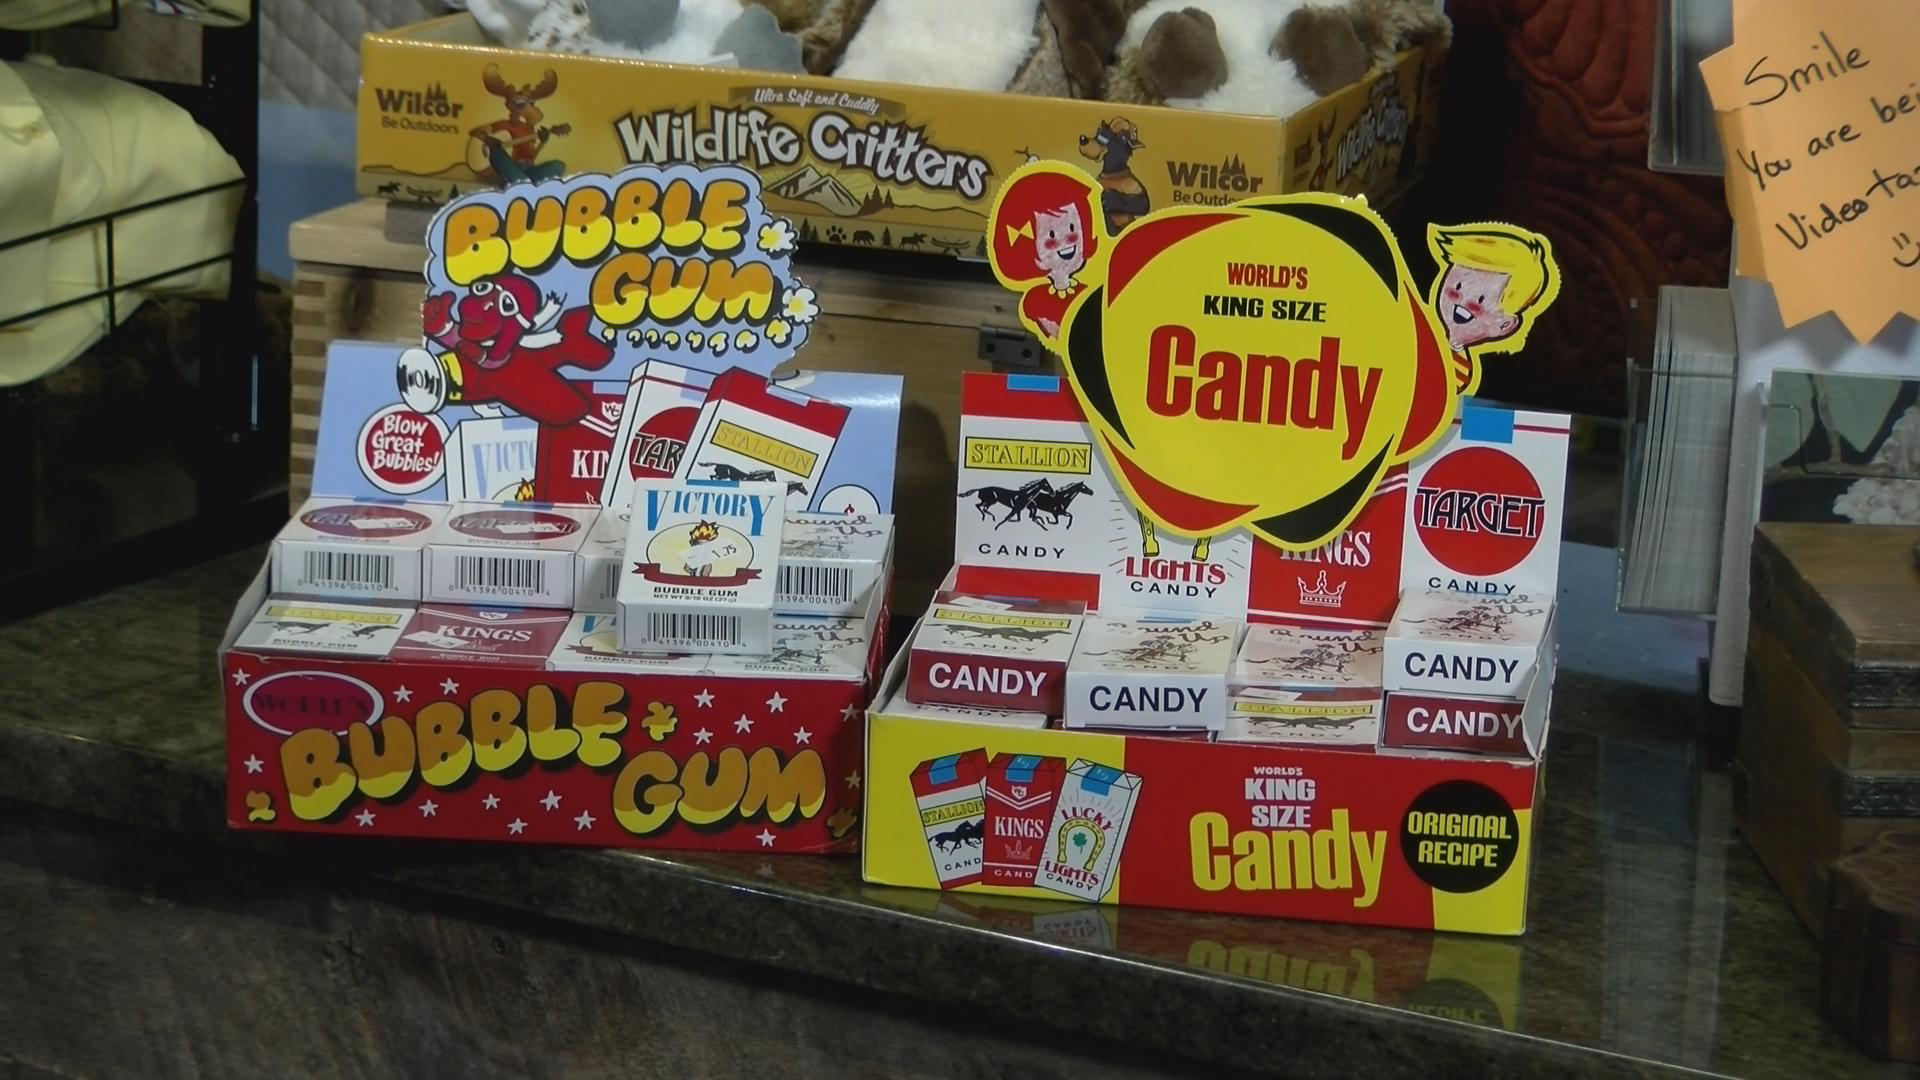 OUTPOST CANDY CIGARETTES